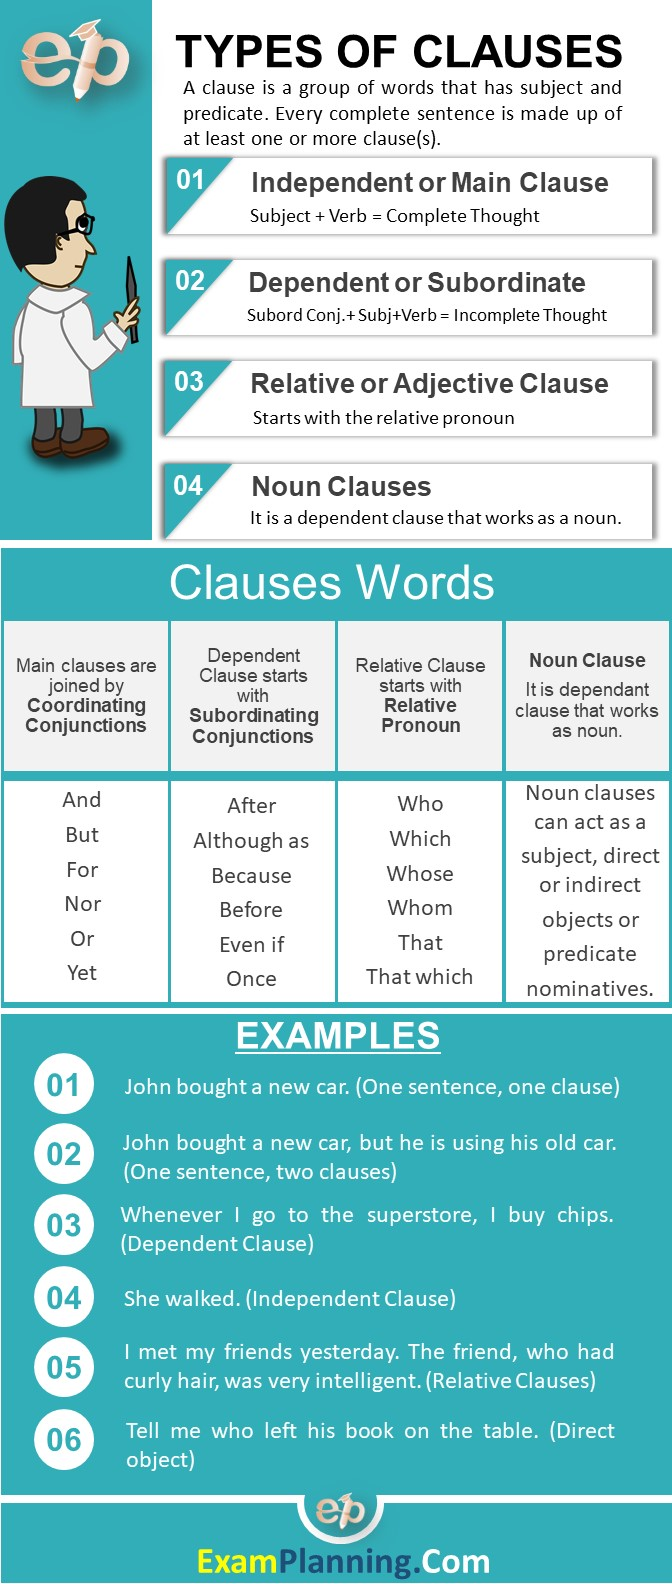 Types of Clauses and their examples